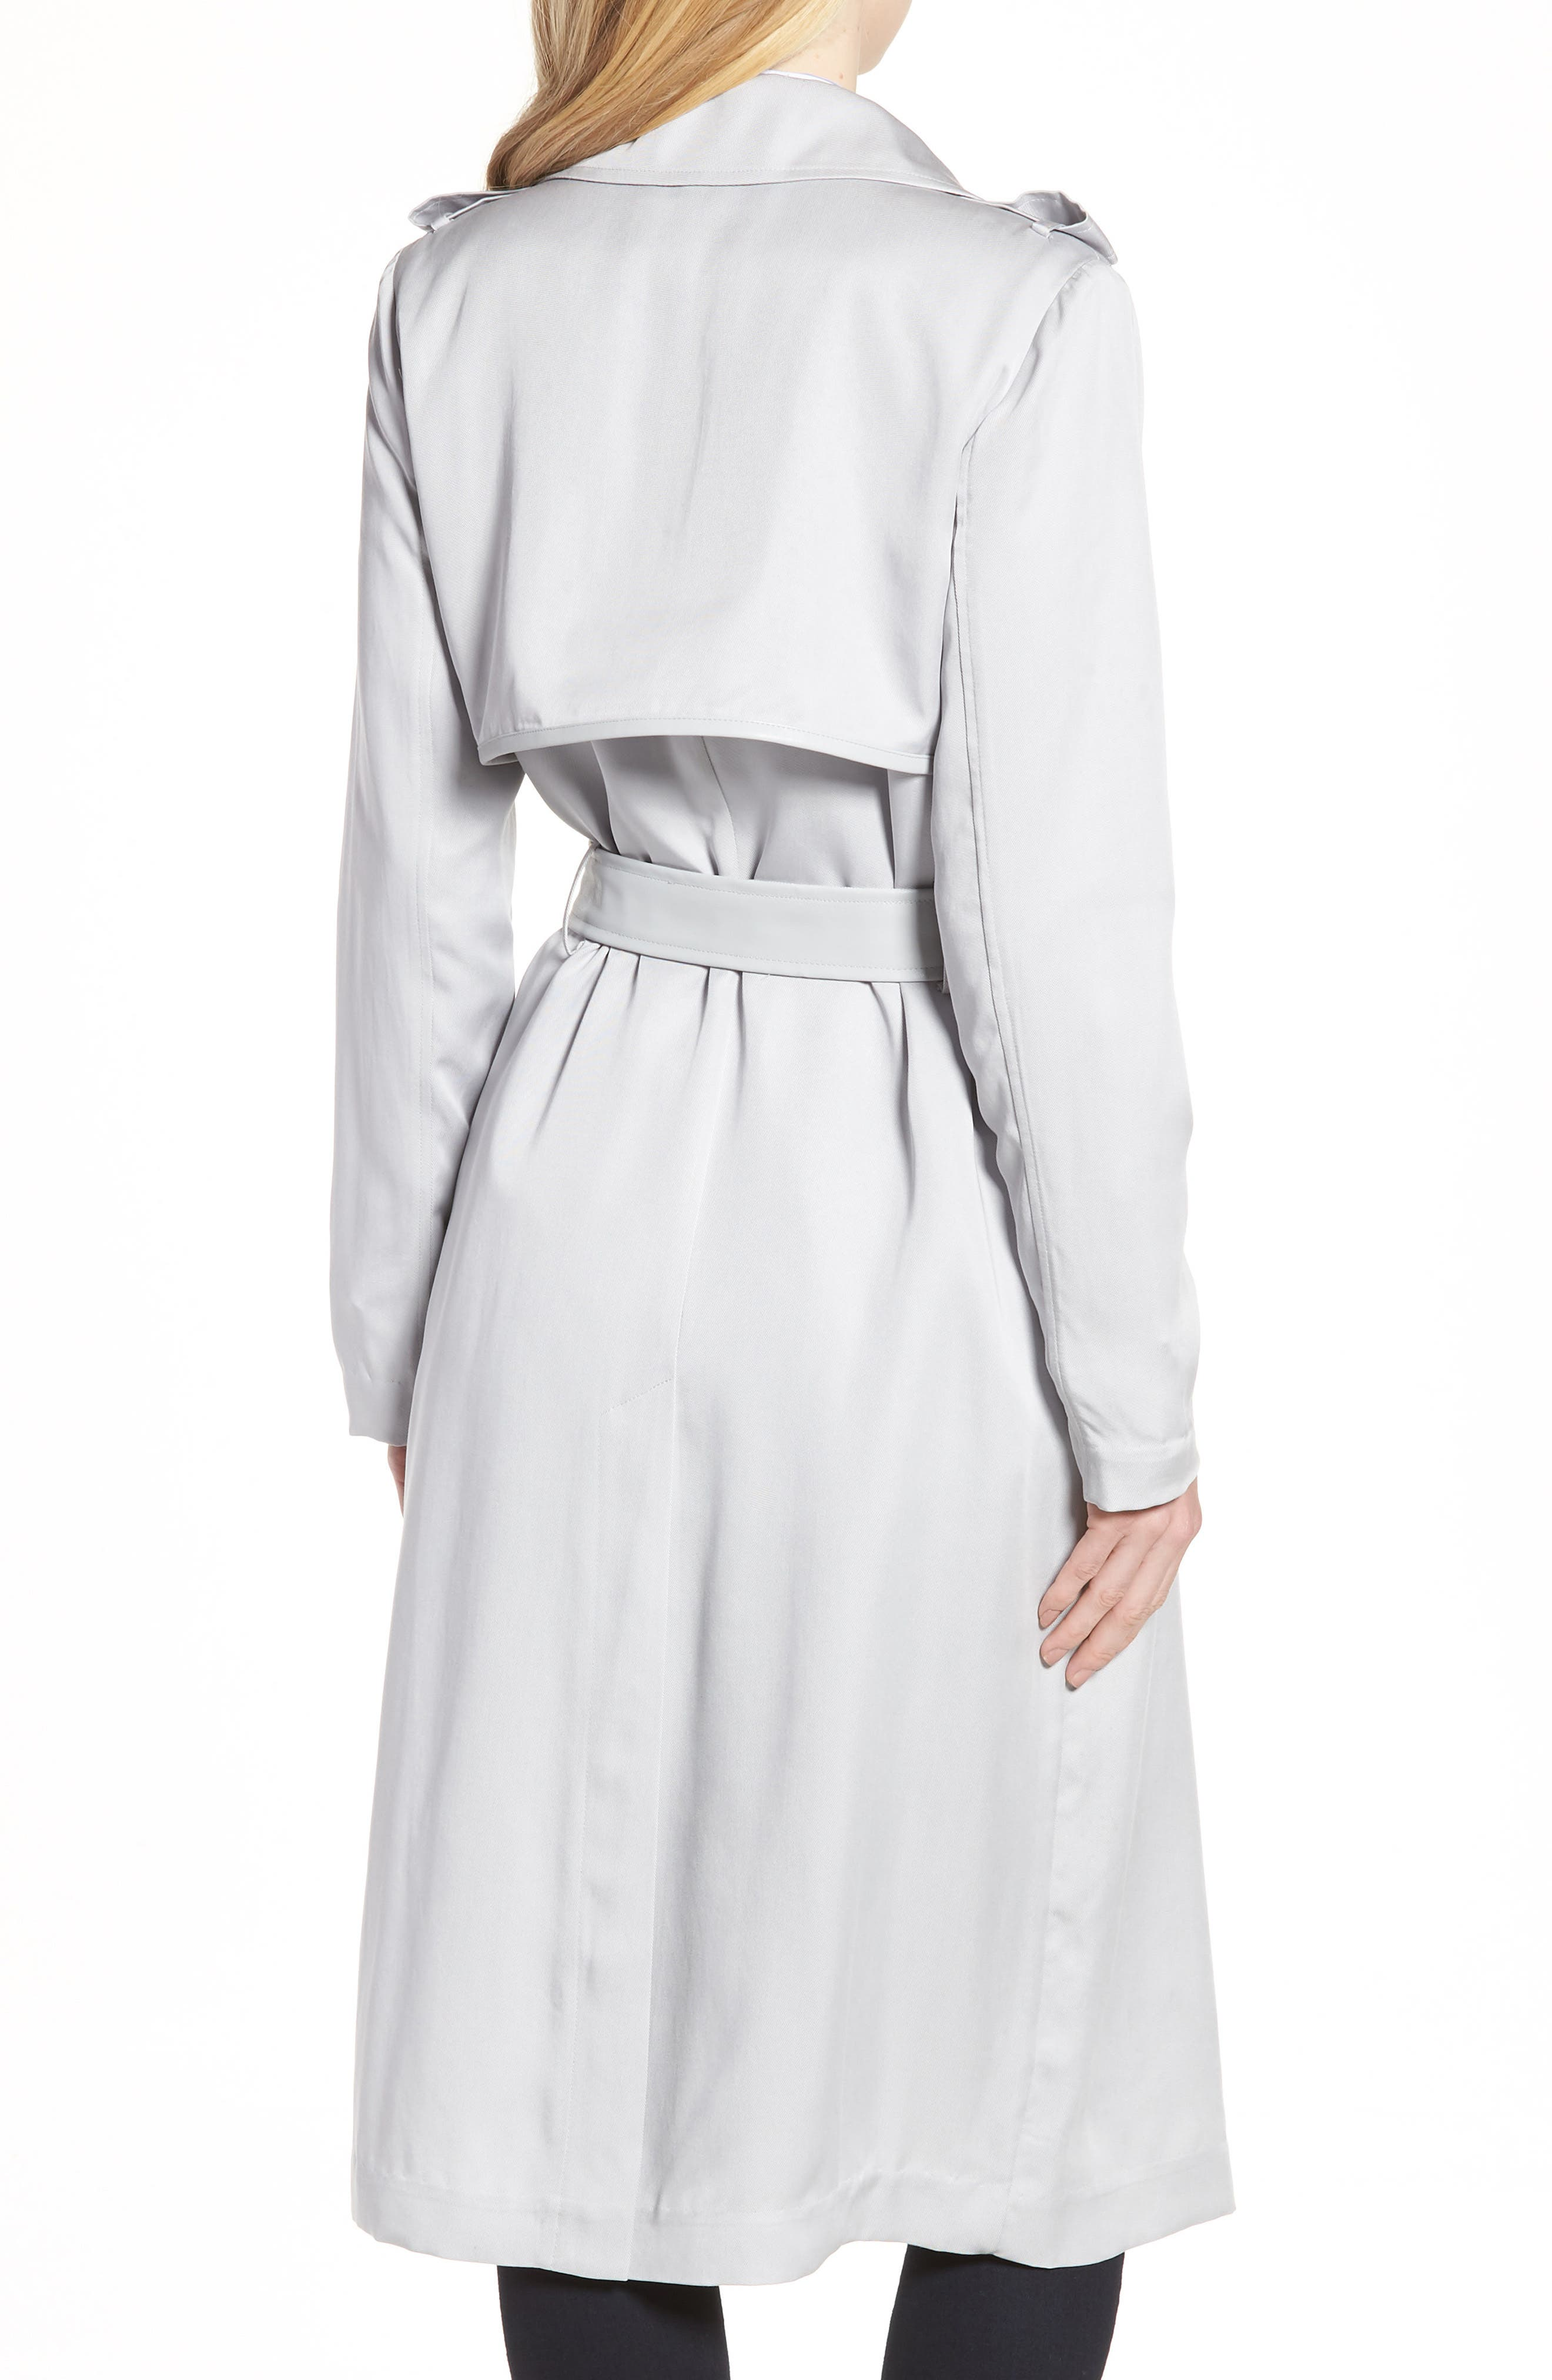 Badgley Mischka Faux Leather Trim Long Trench Coat,                             Alternate thumbnail 2, color,                             020